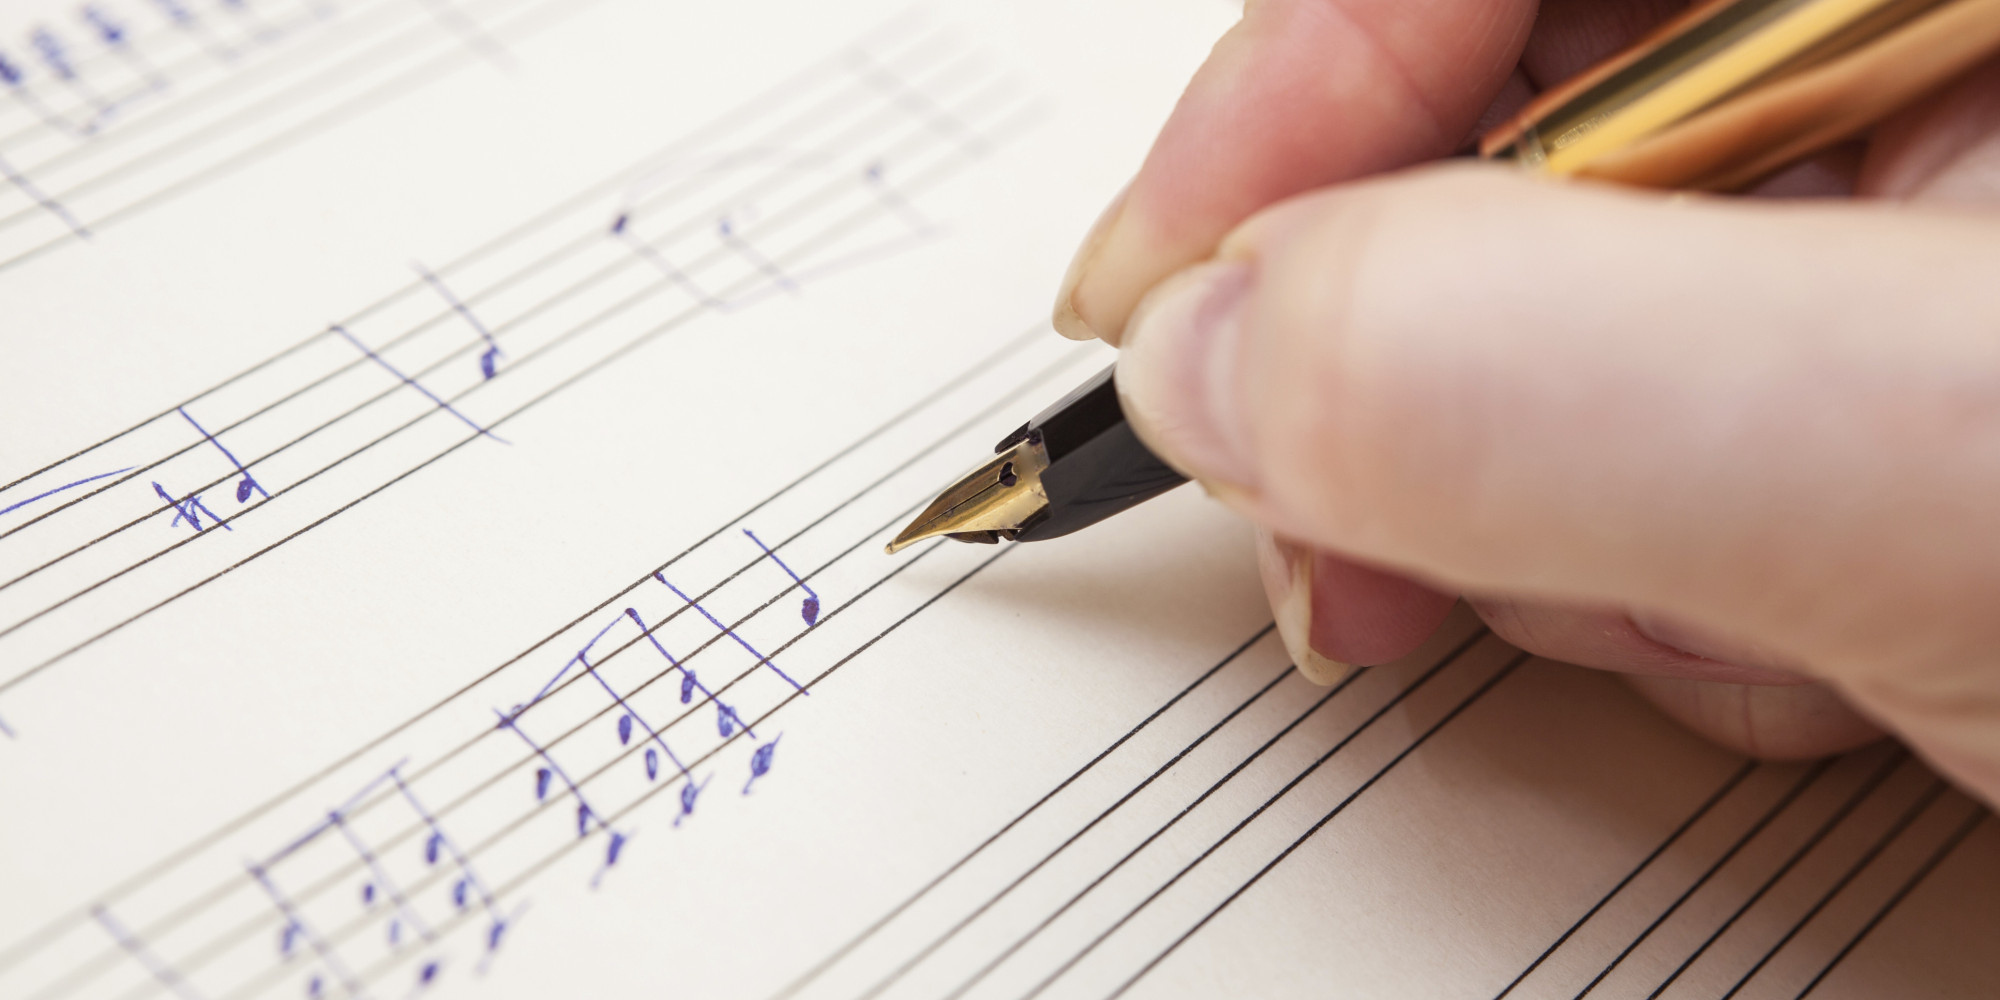 3 Secrets To Writing Great Pop Songs | HuffPost